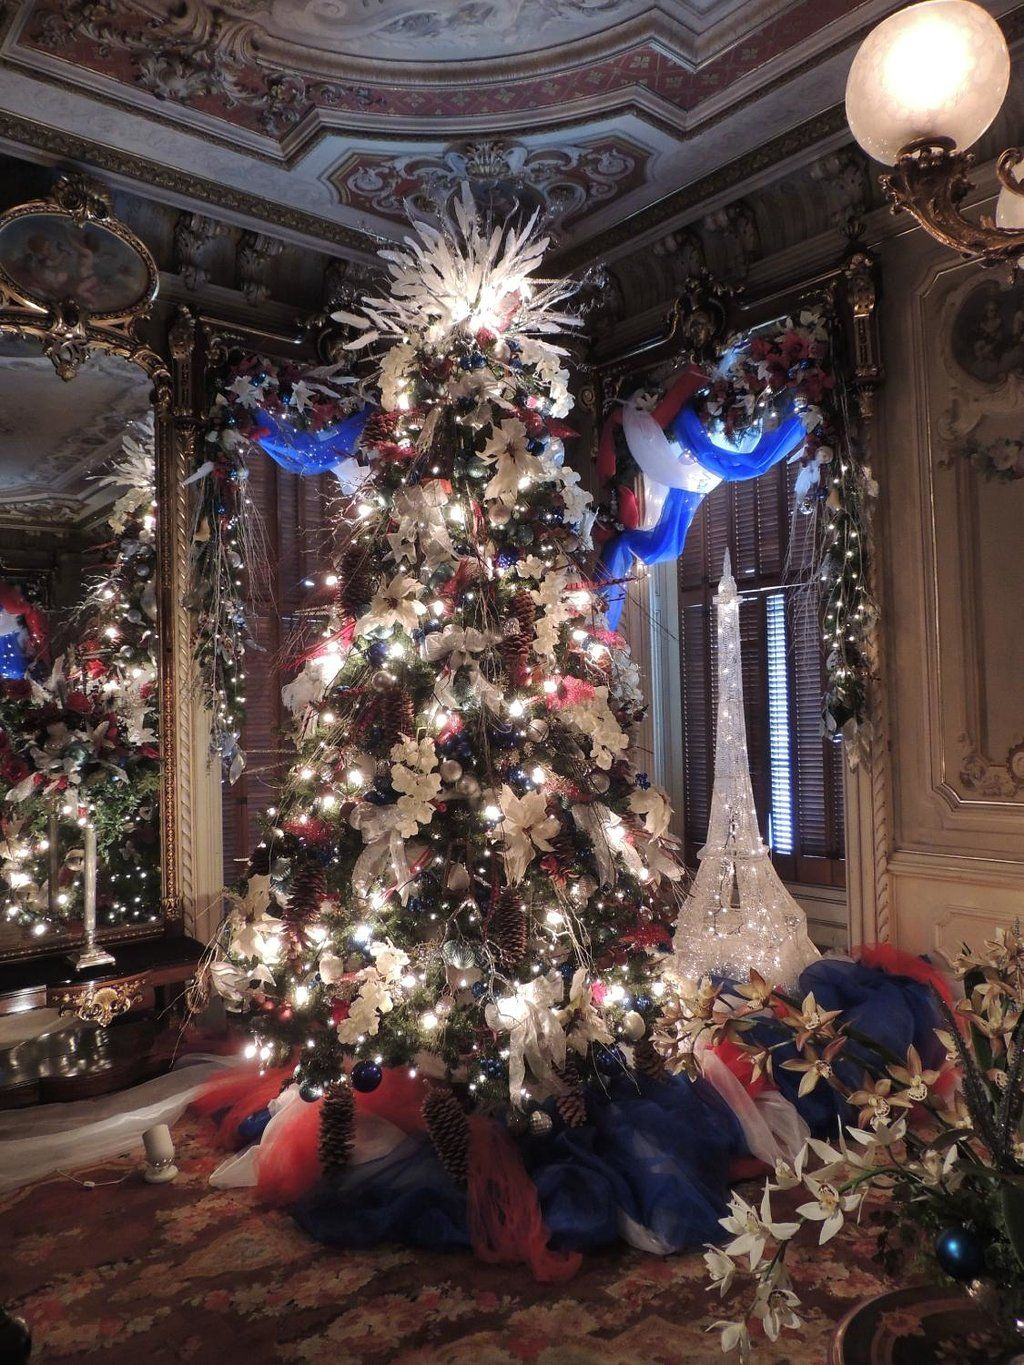 Victoria Mansion Christmas 2020 Victoria Mansion, Portland: See 507 reviews, articles, and 87